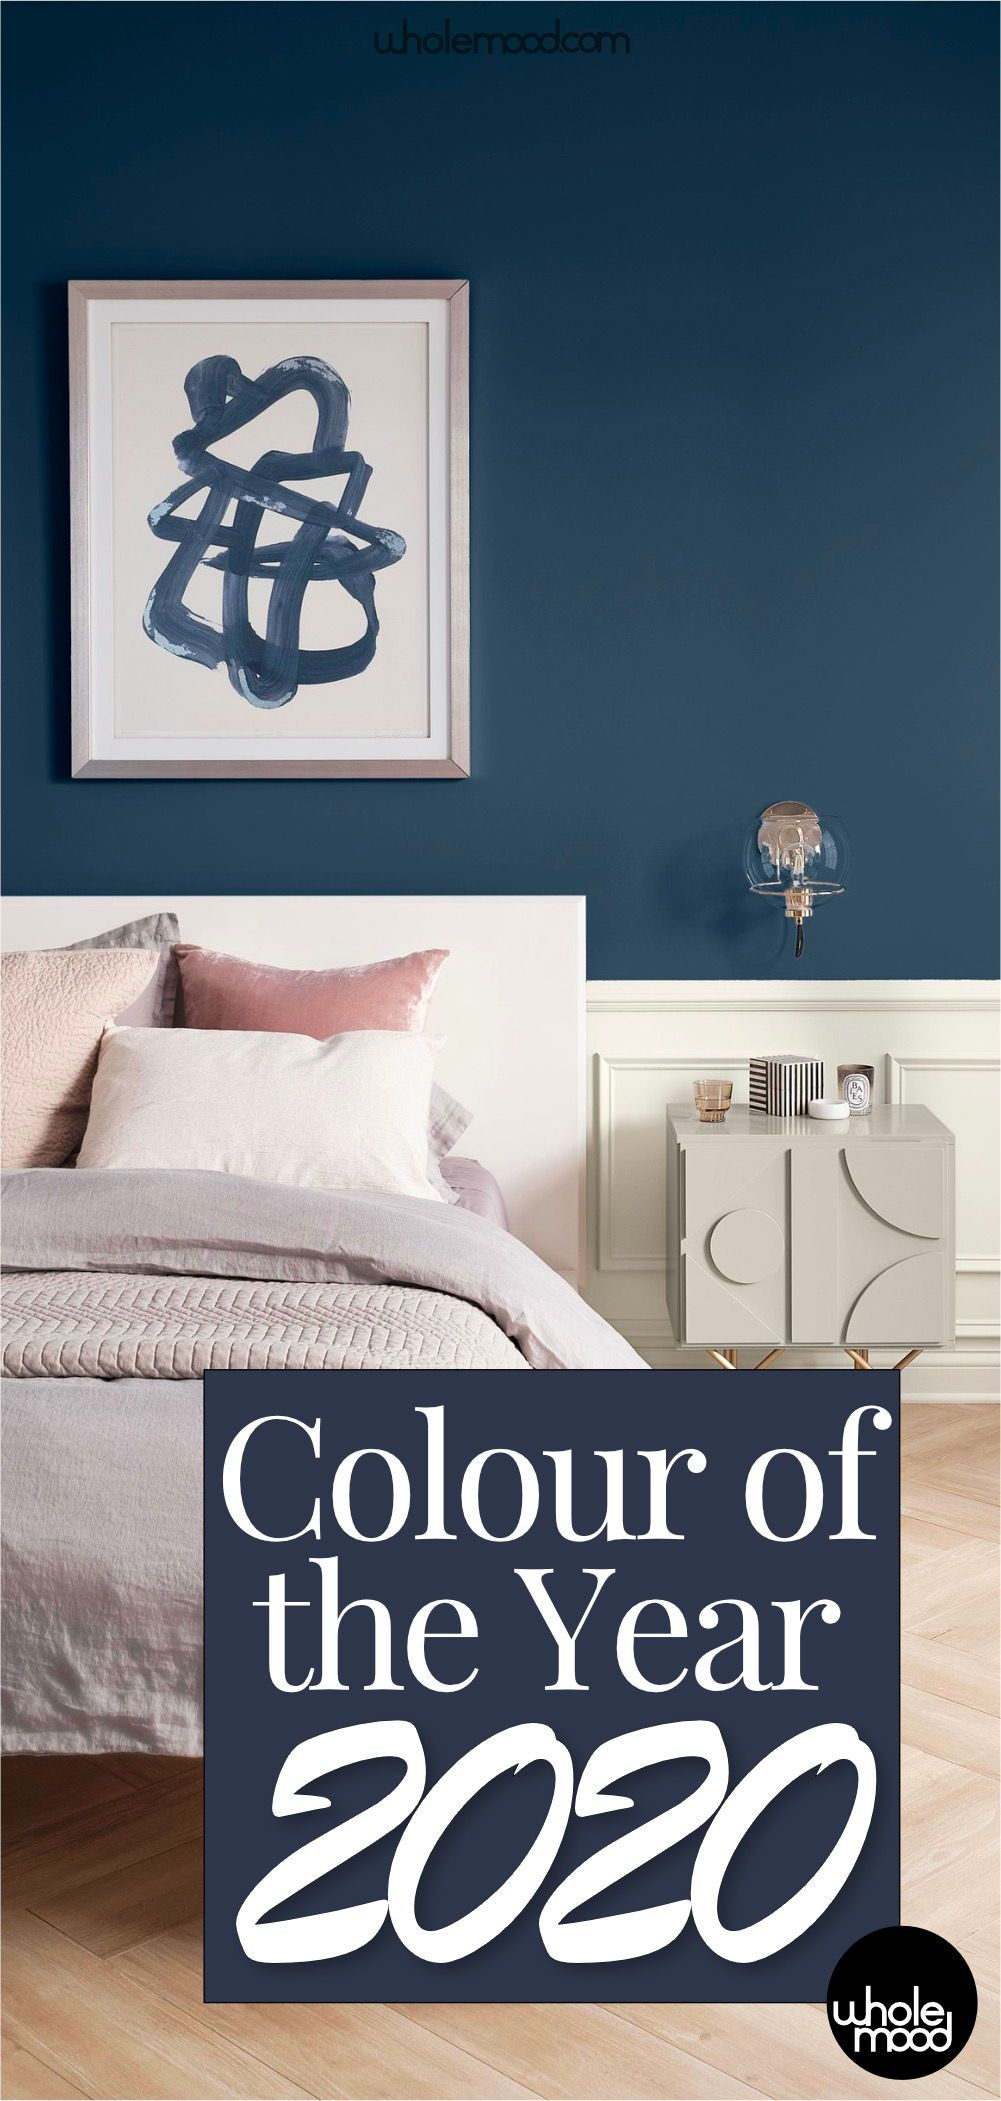 2020 colour of the year new decade cool new tone on sherwin williams 2021 color trends id=39578